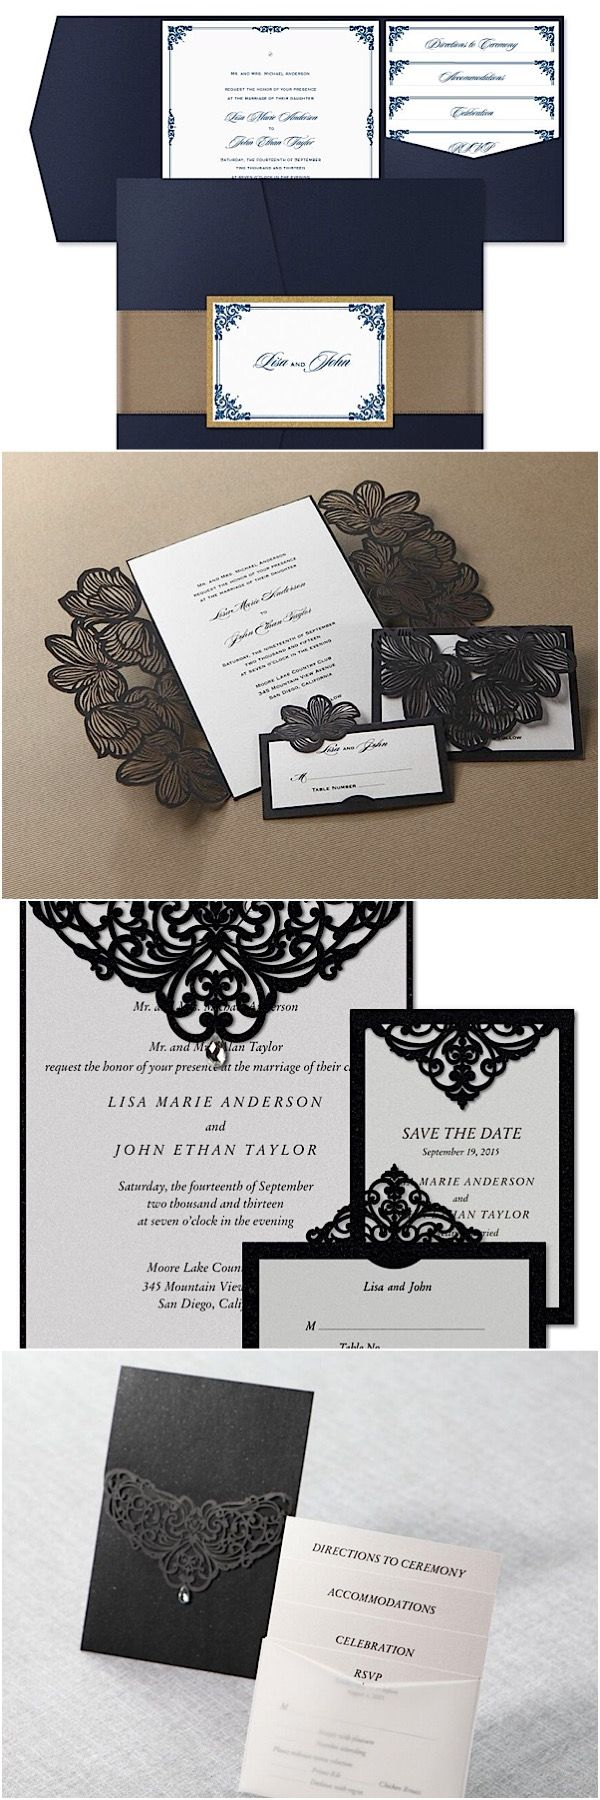 muslim wedding card invitation quotes%0A Elegant wedding invitations from Bweddinginvitations